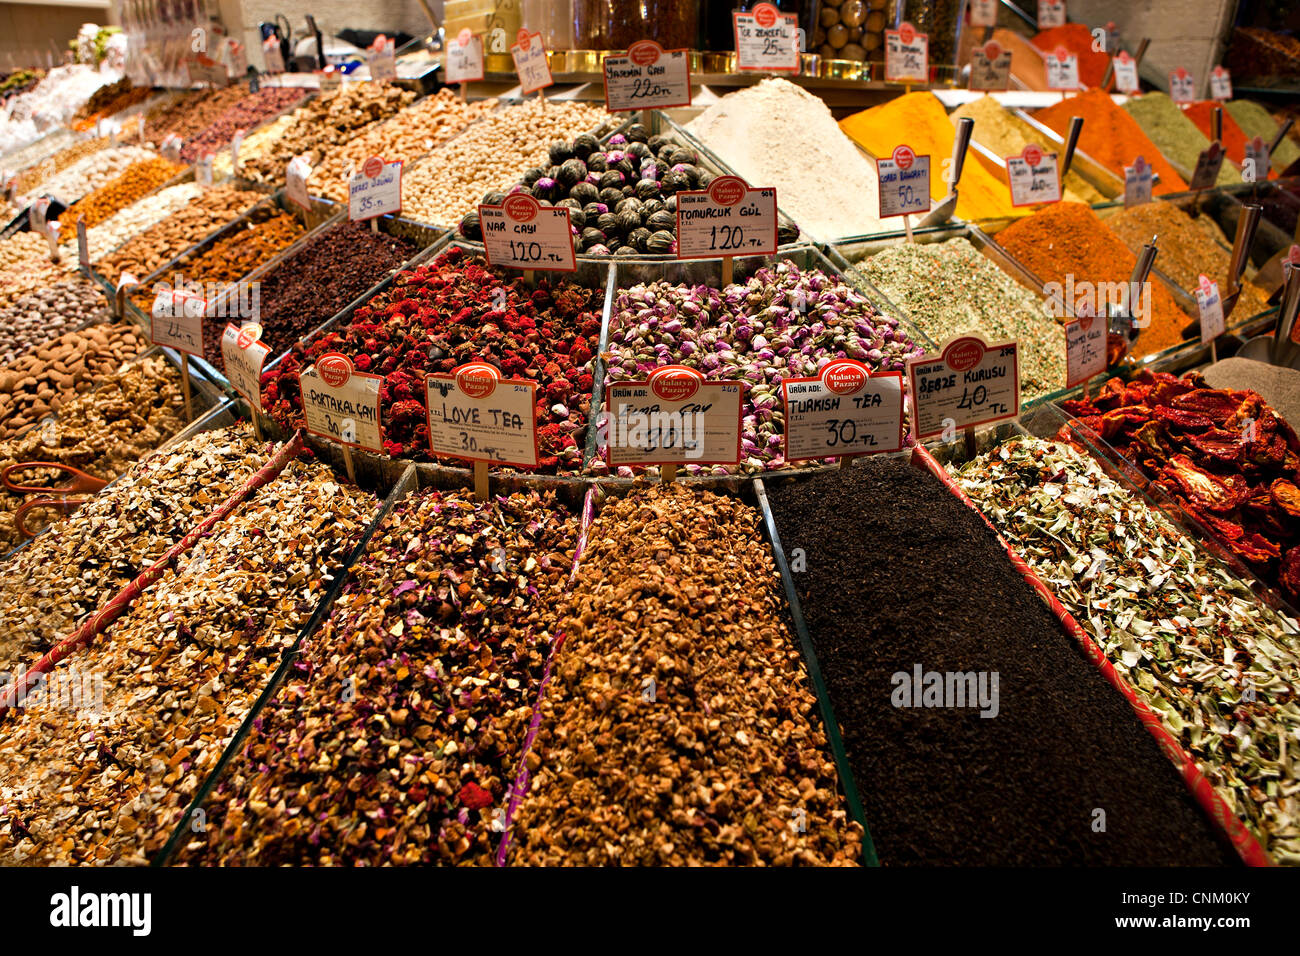 tea and spices at the Egyptian Bazaar, Istanbul, Turkey - Stock Image